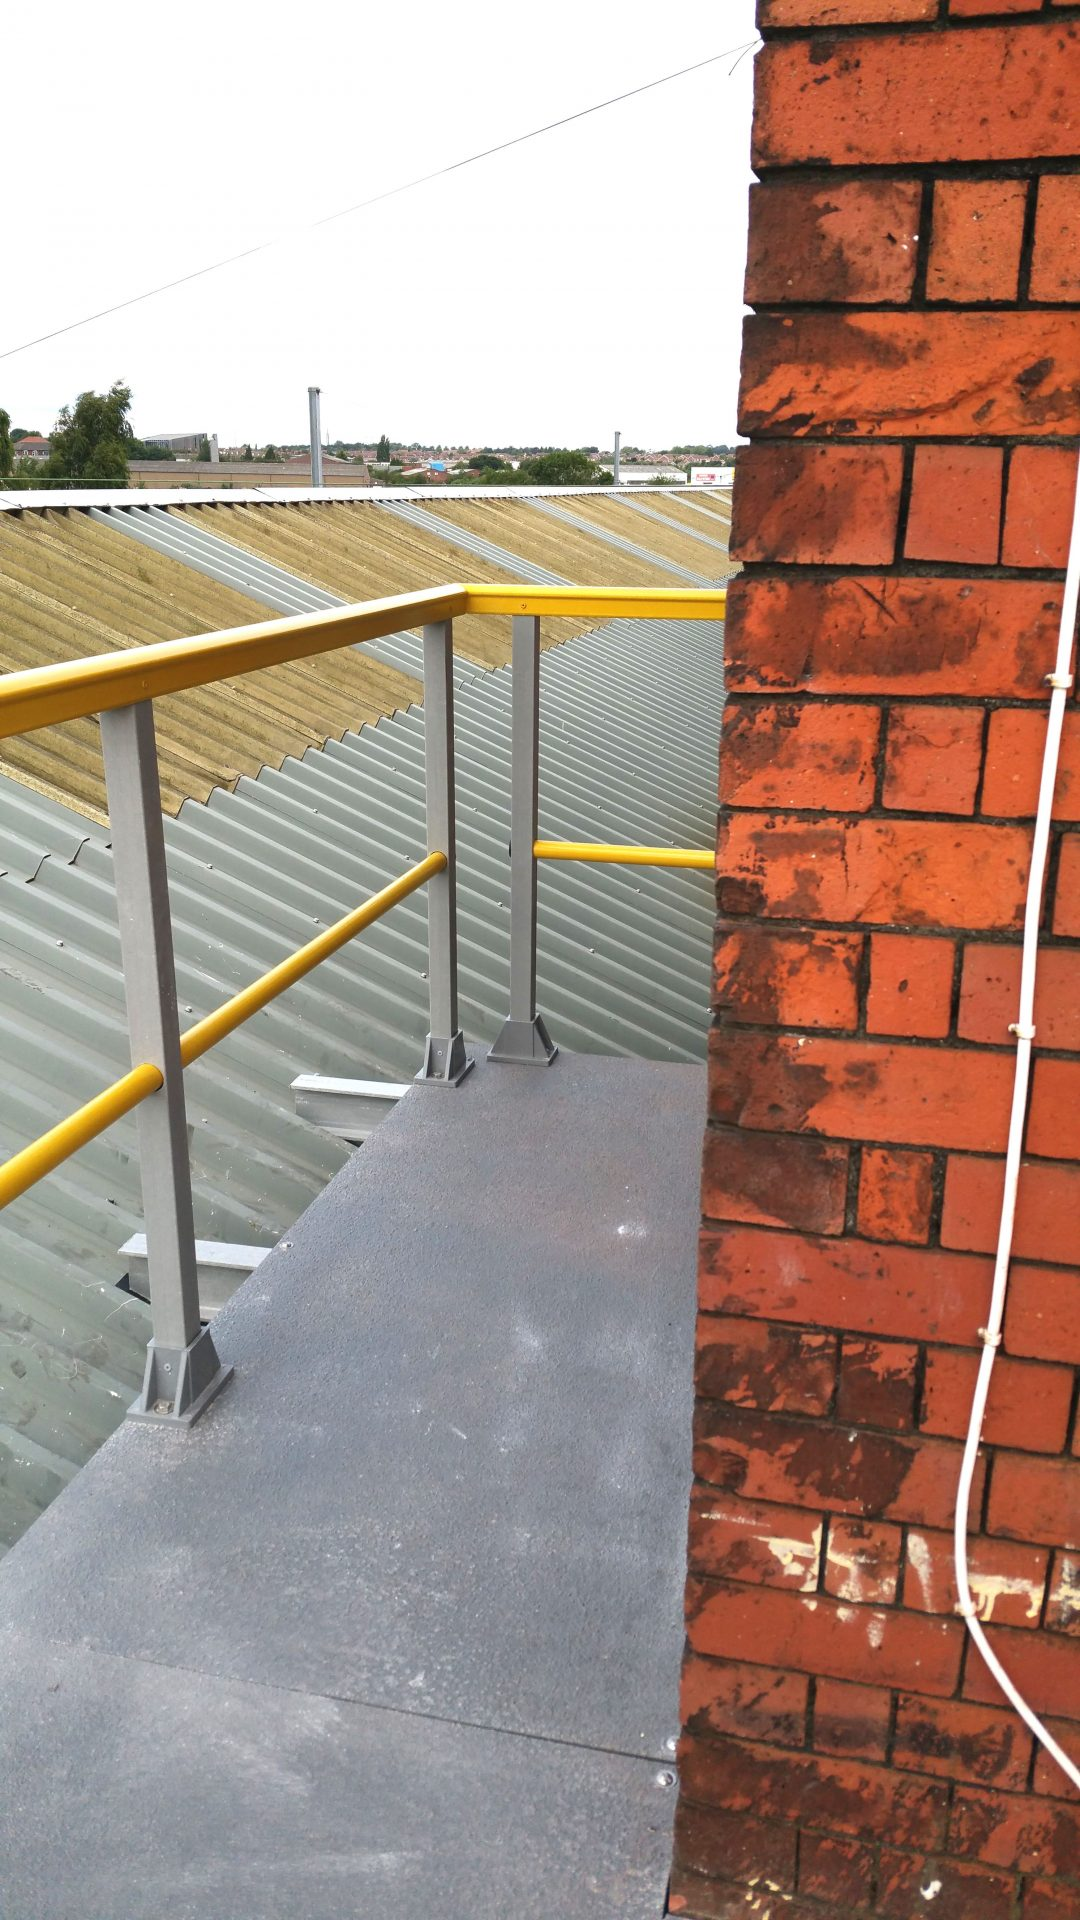 Roof walkway platform with new GRP panels and guard rail